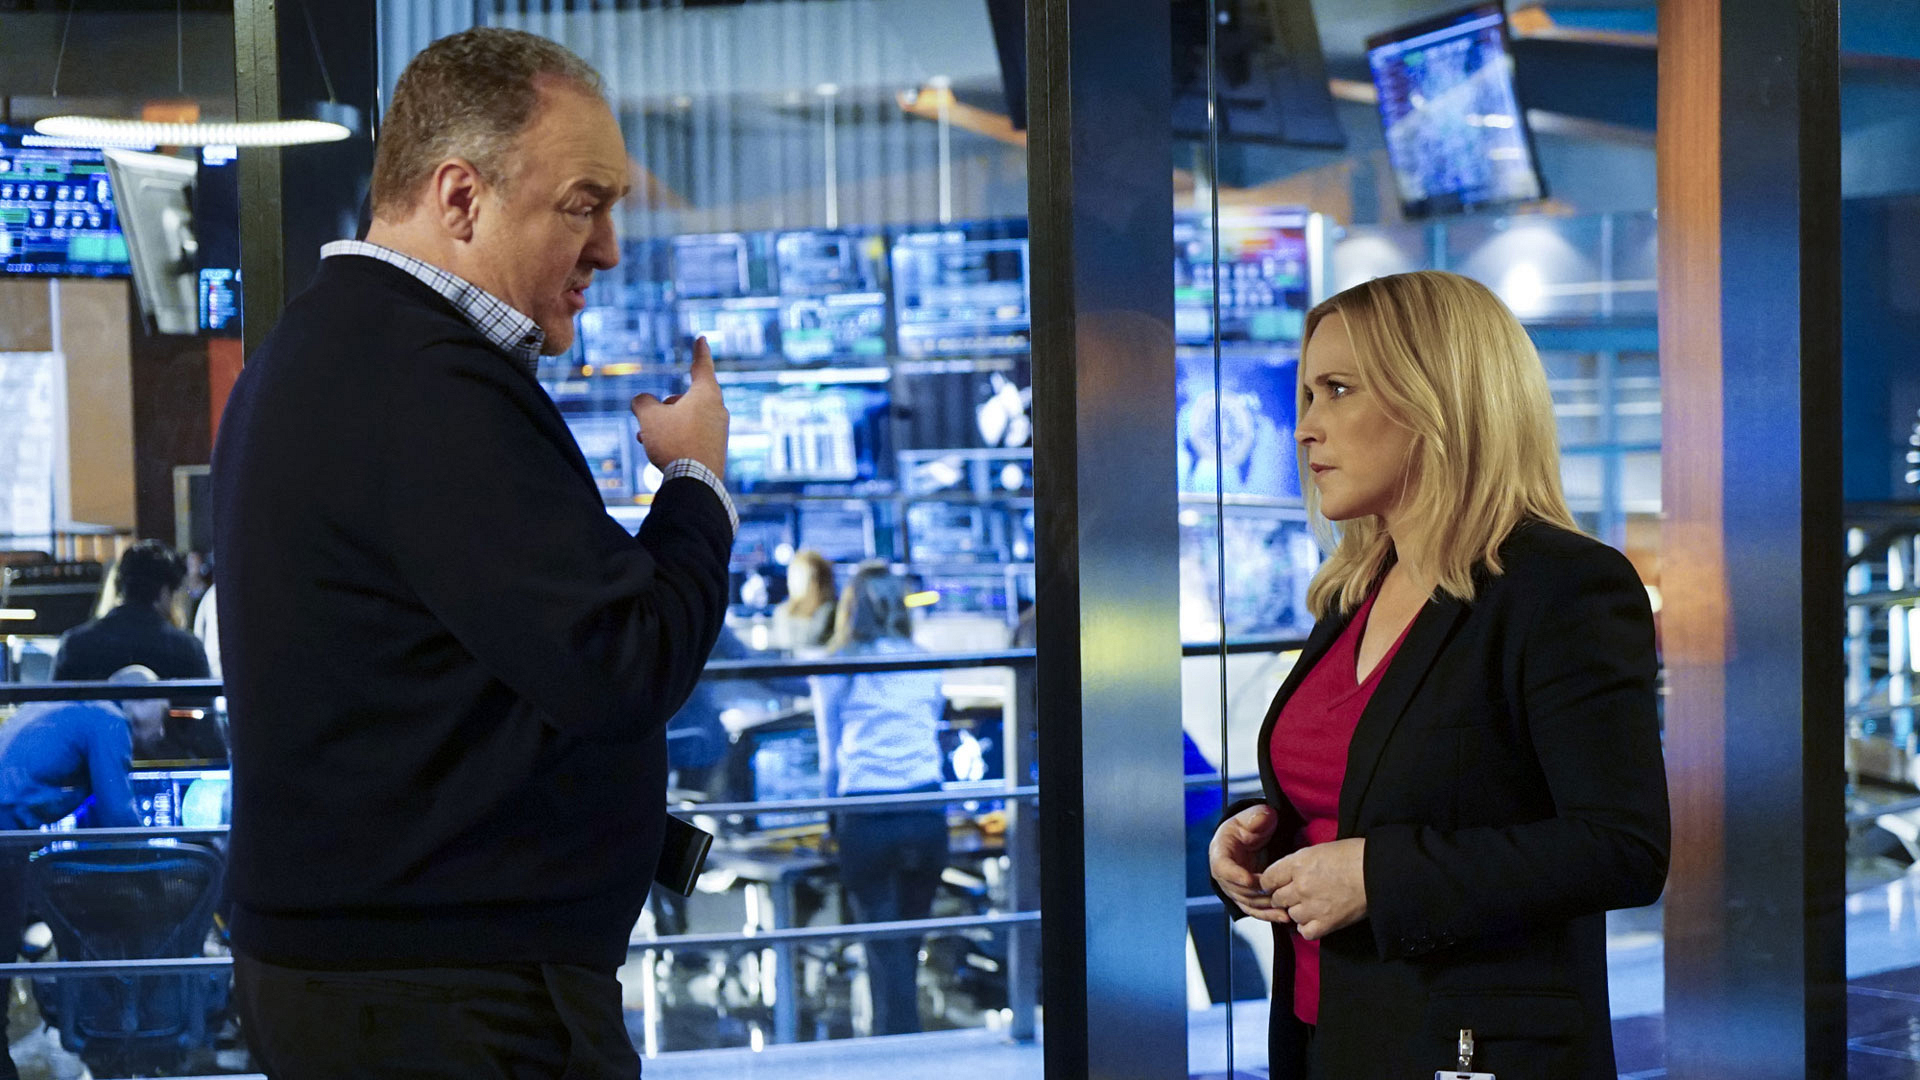 Brent Sexton as Andrew Michaels and Patricia Arquette as Agent Avery Ryan